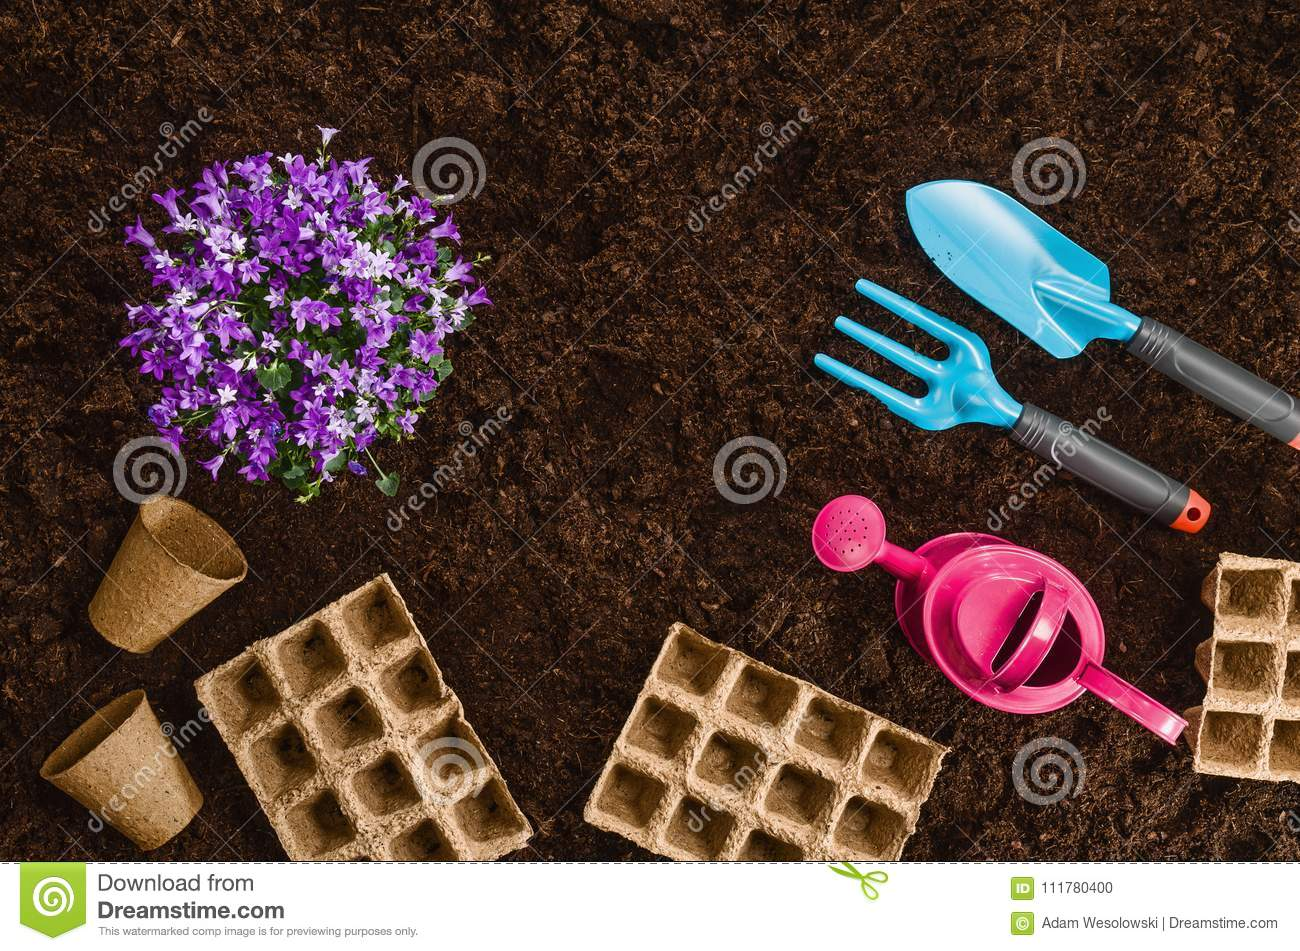 Gardening tools on garden soil texture background top view